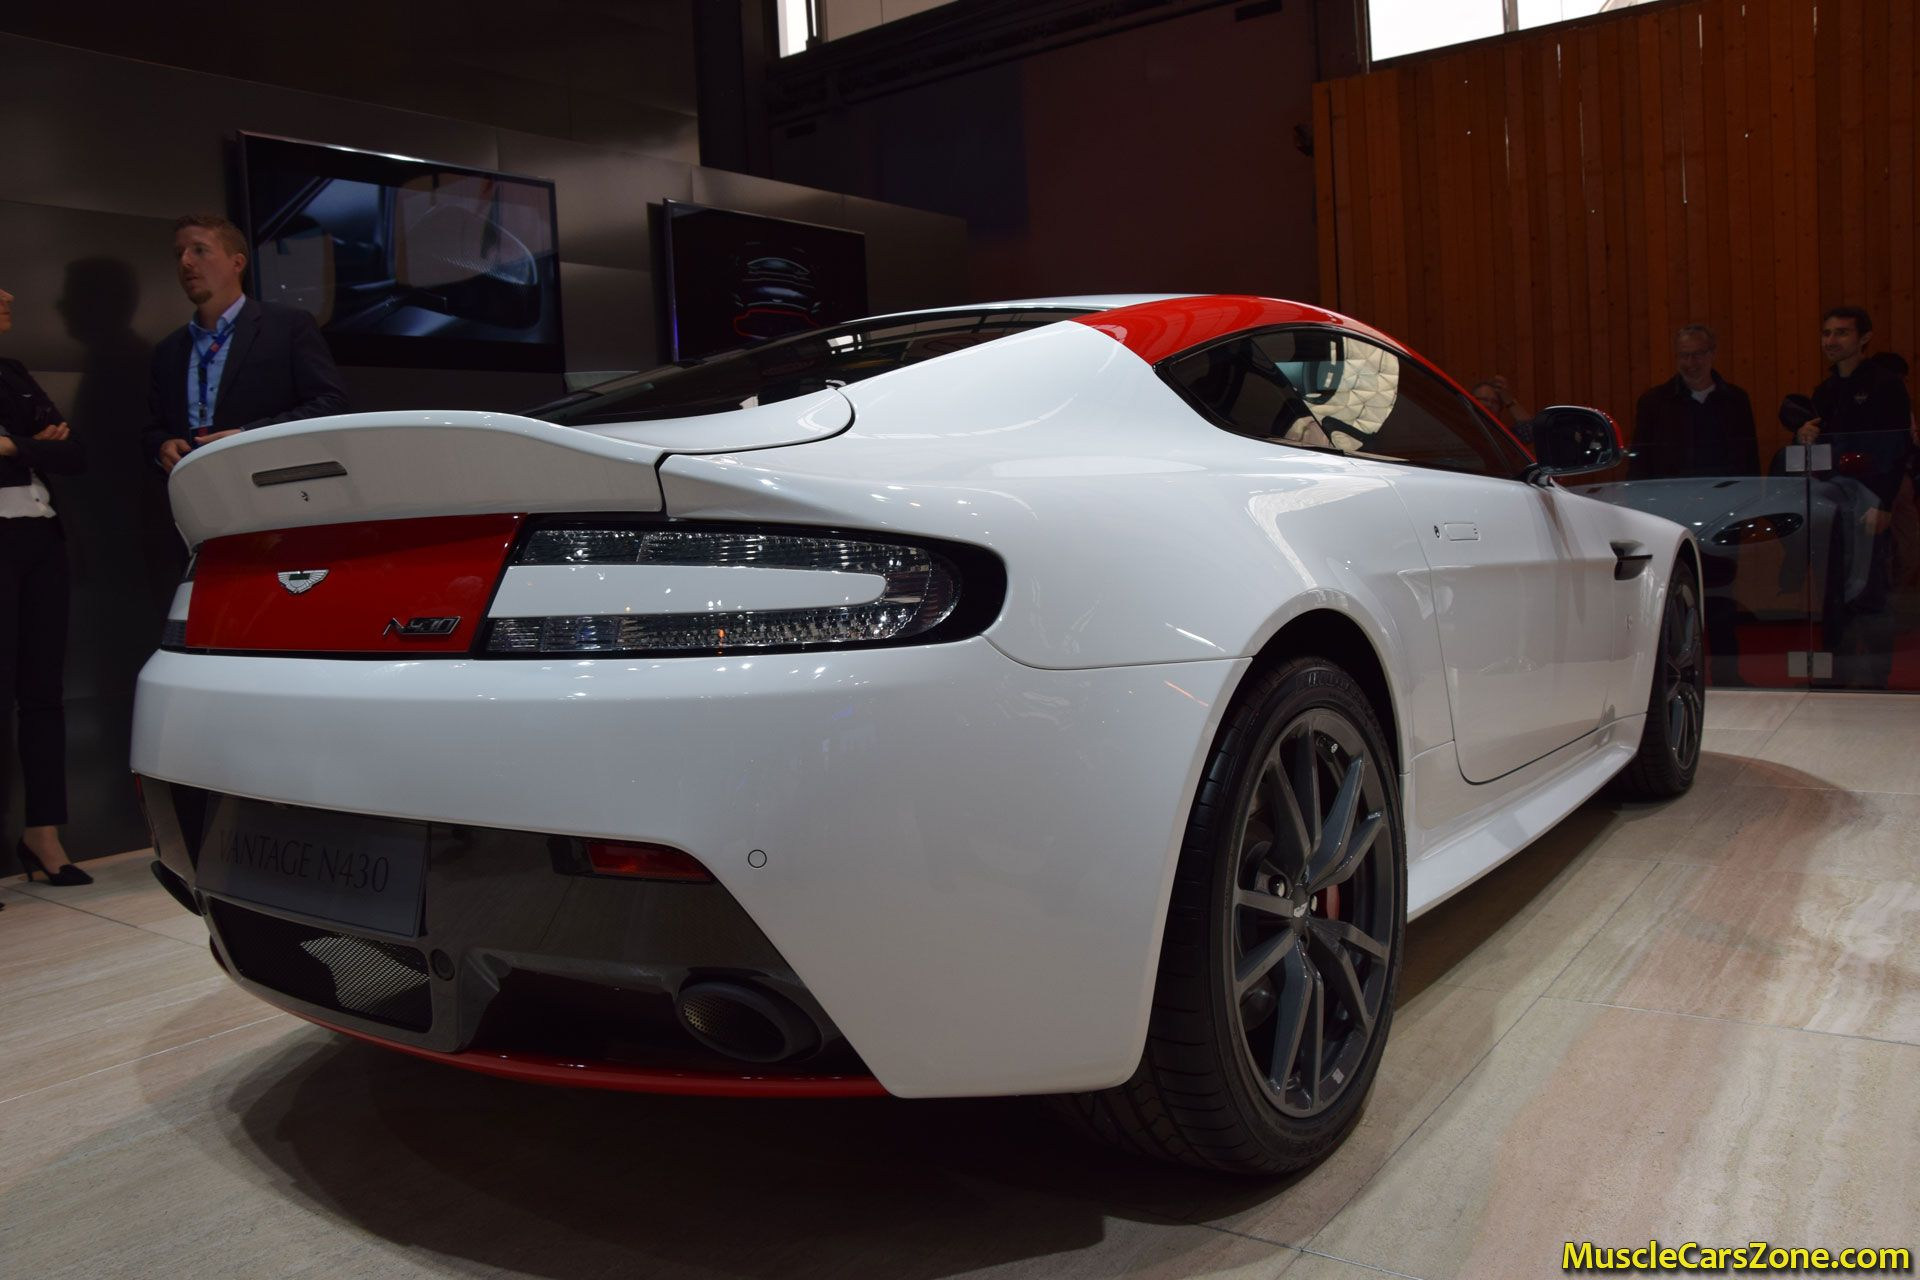 aston martin vantage r430 2014 paris motor show 5 muscle cars zone. Black Bedroom Furniture Sets. Home Design Ideas